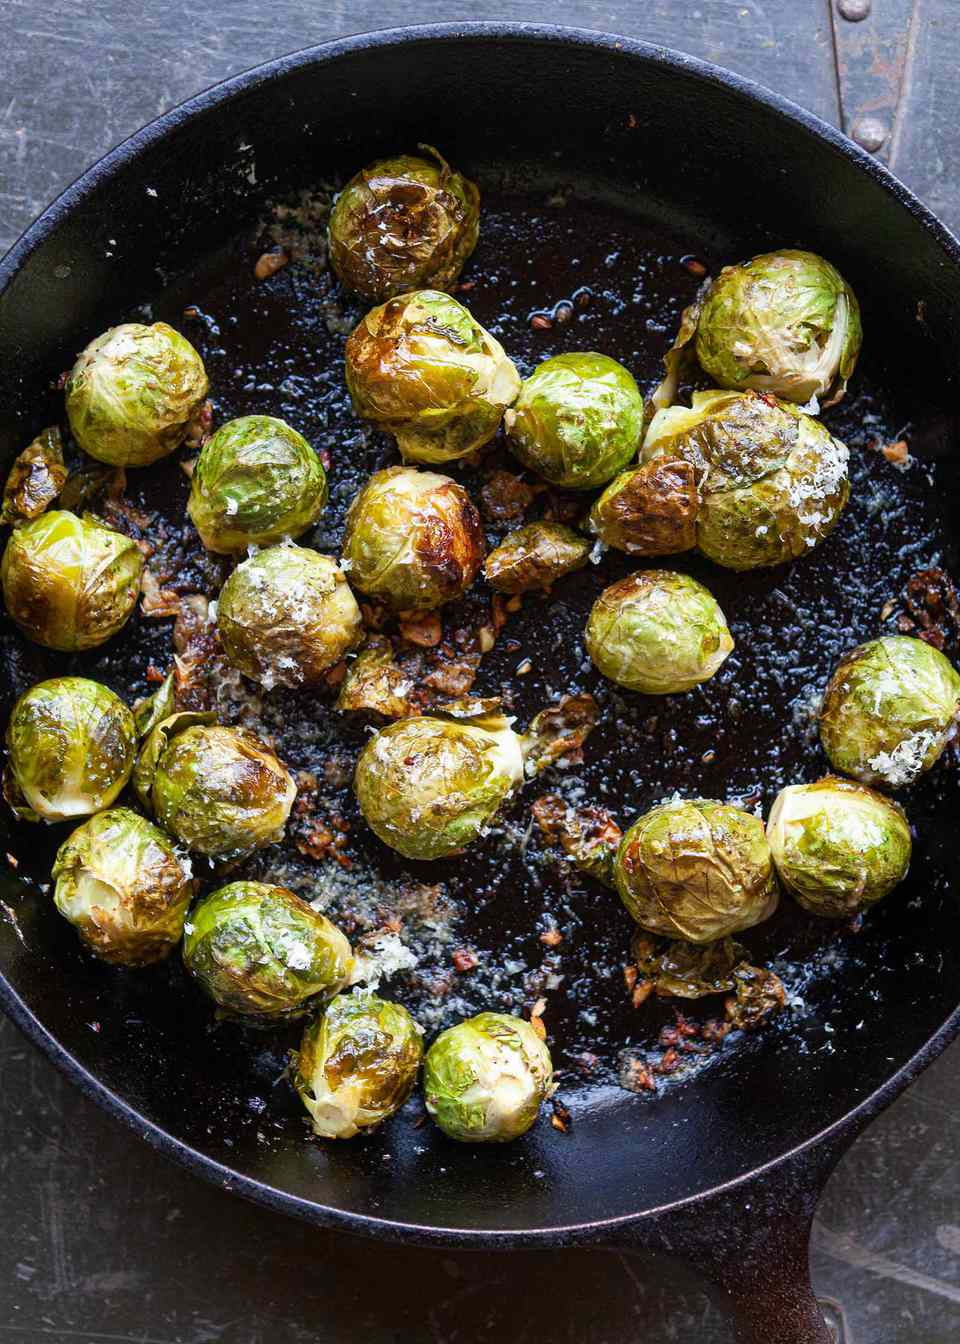 How to roast brussel sprouts in a cast iron skillet